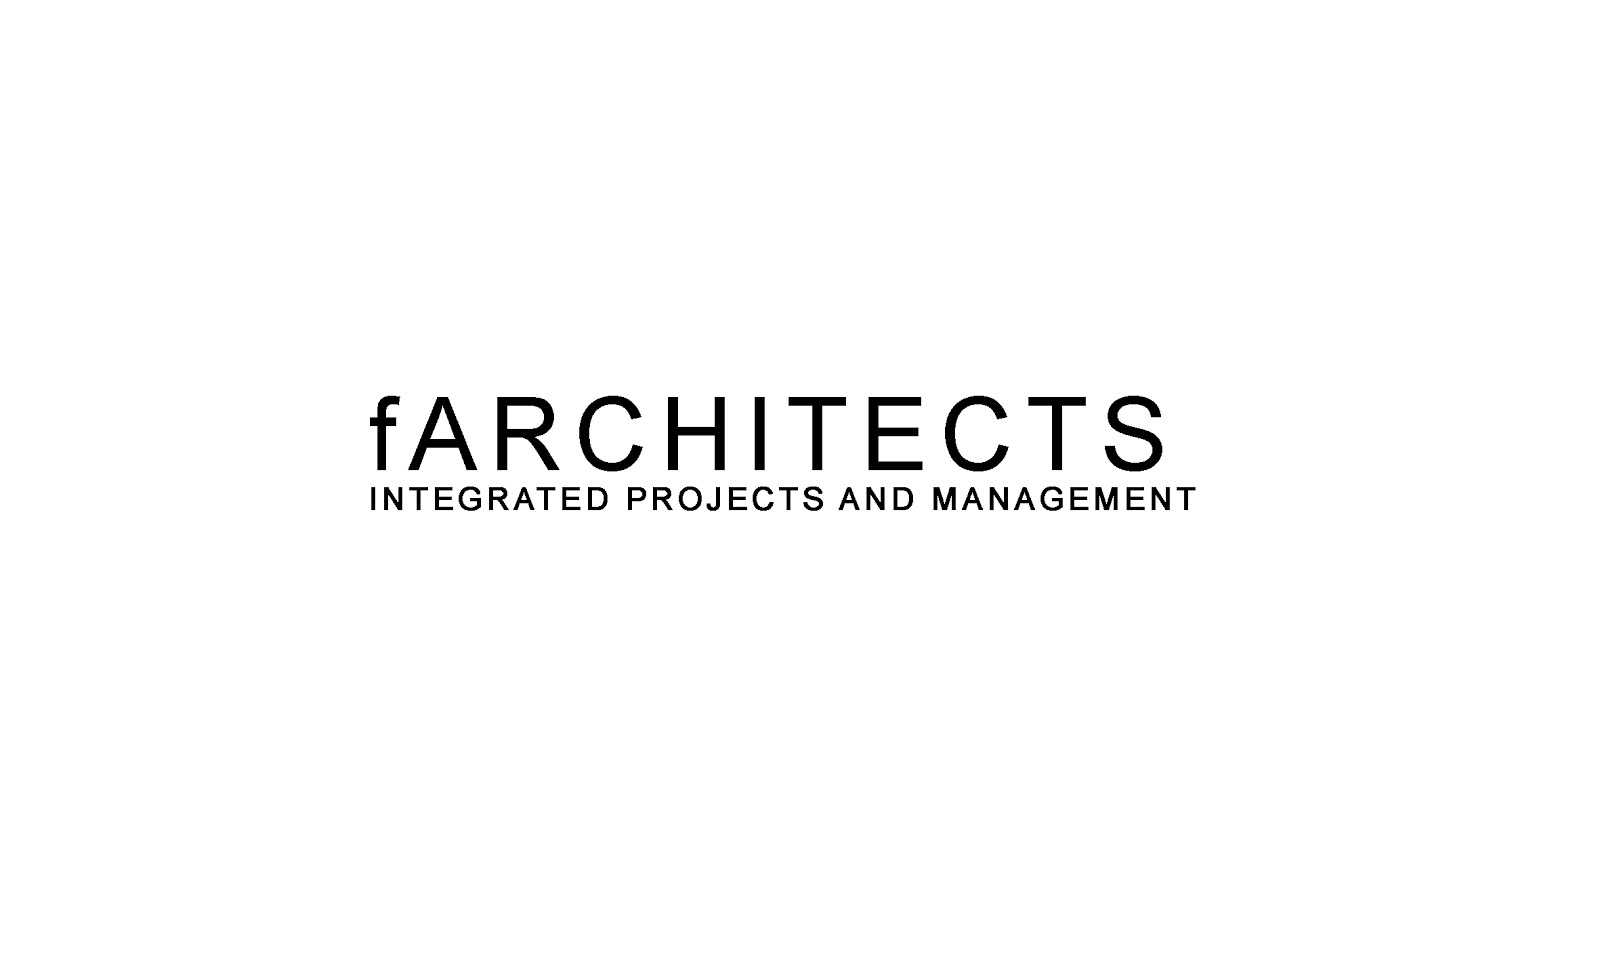 FARCHITECTS